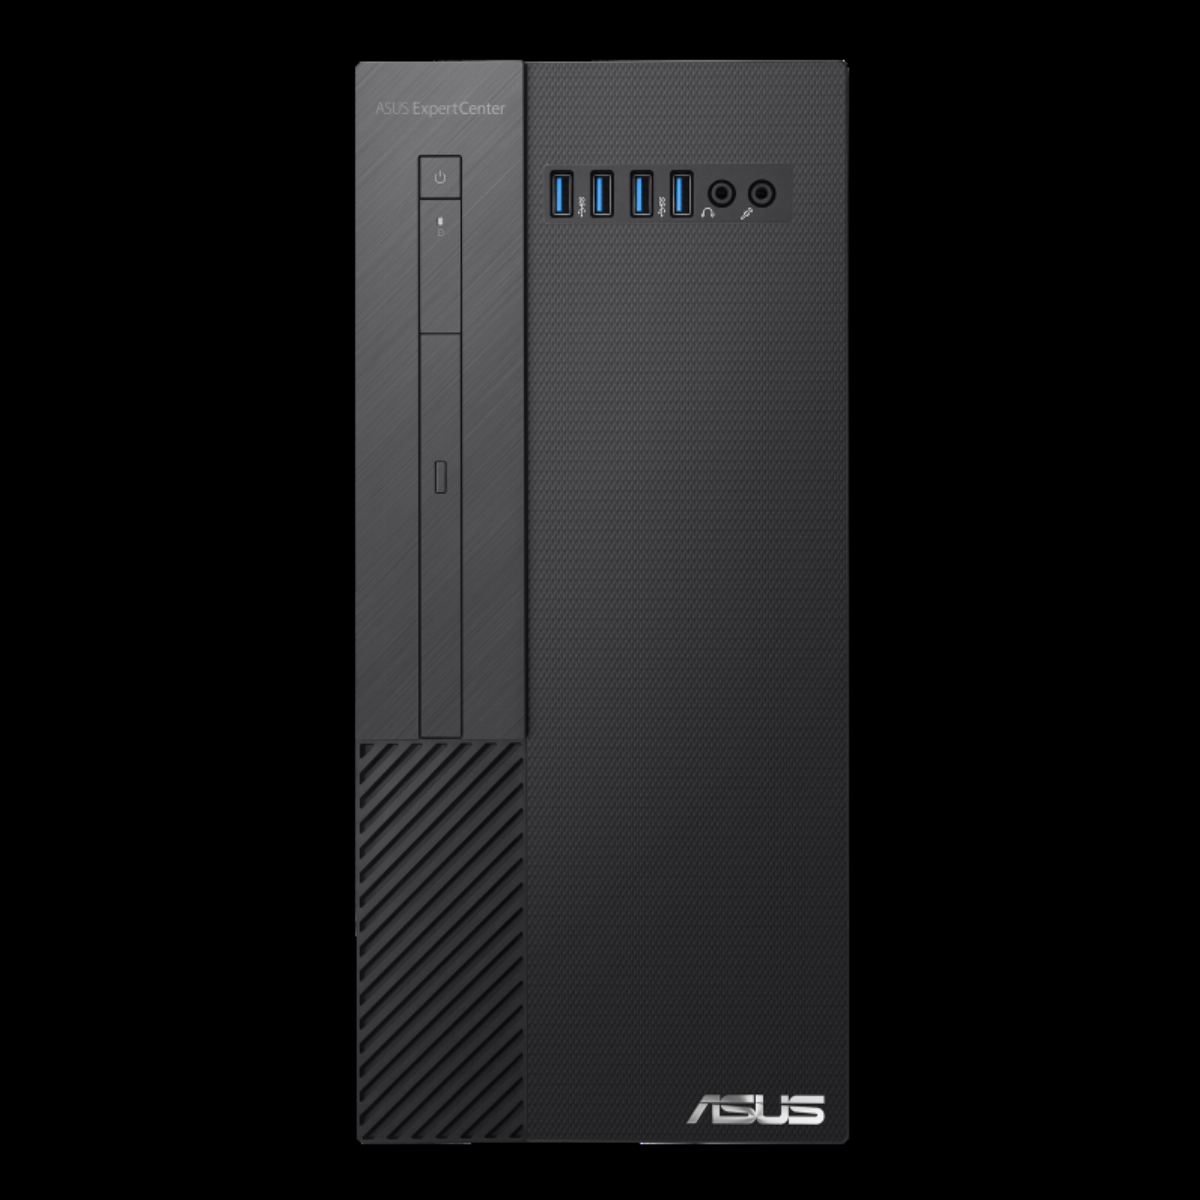 ASUS X500MA-R4600G0060